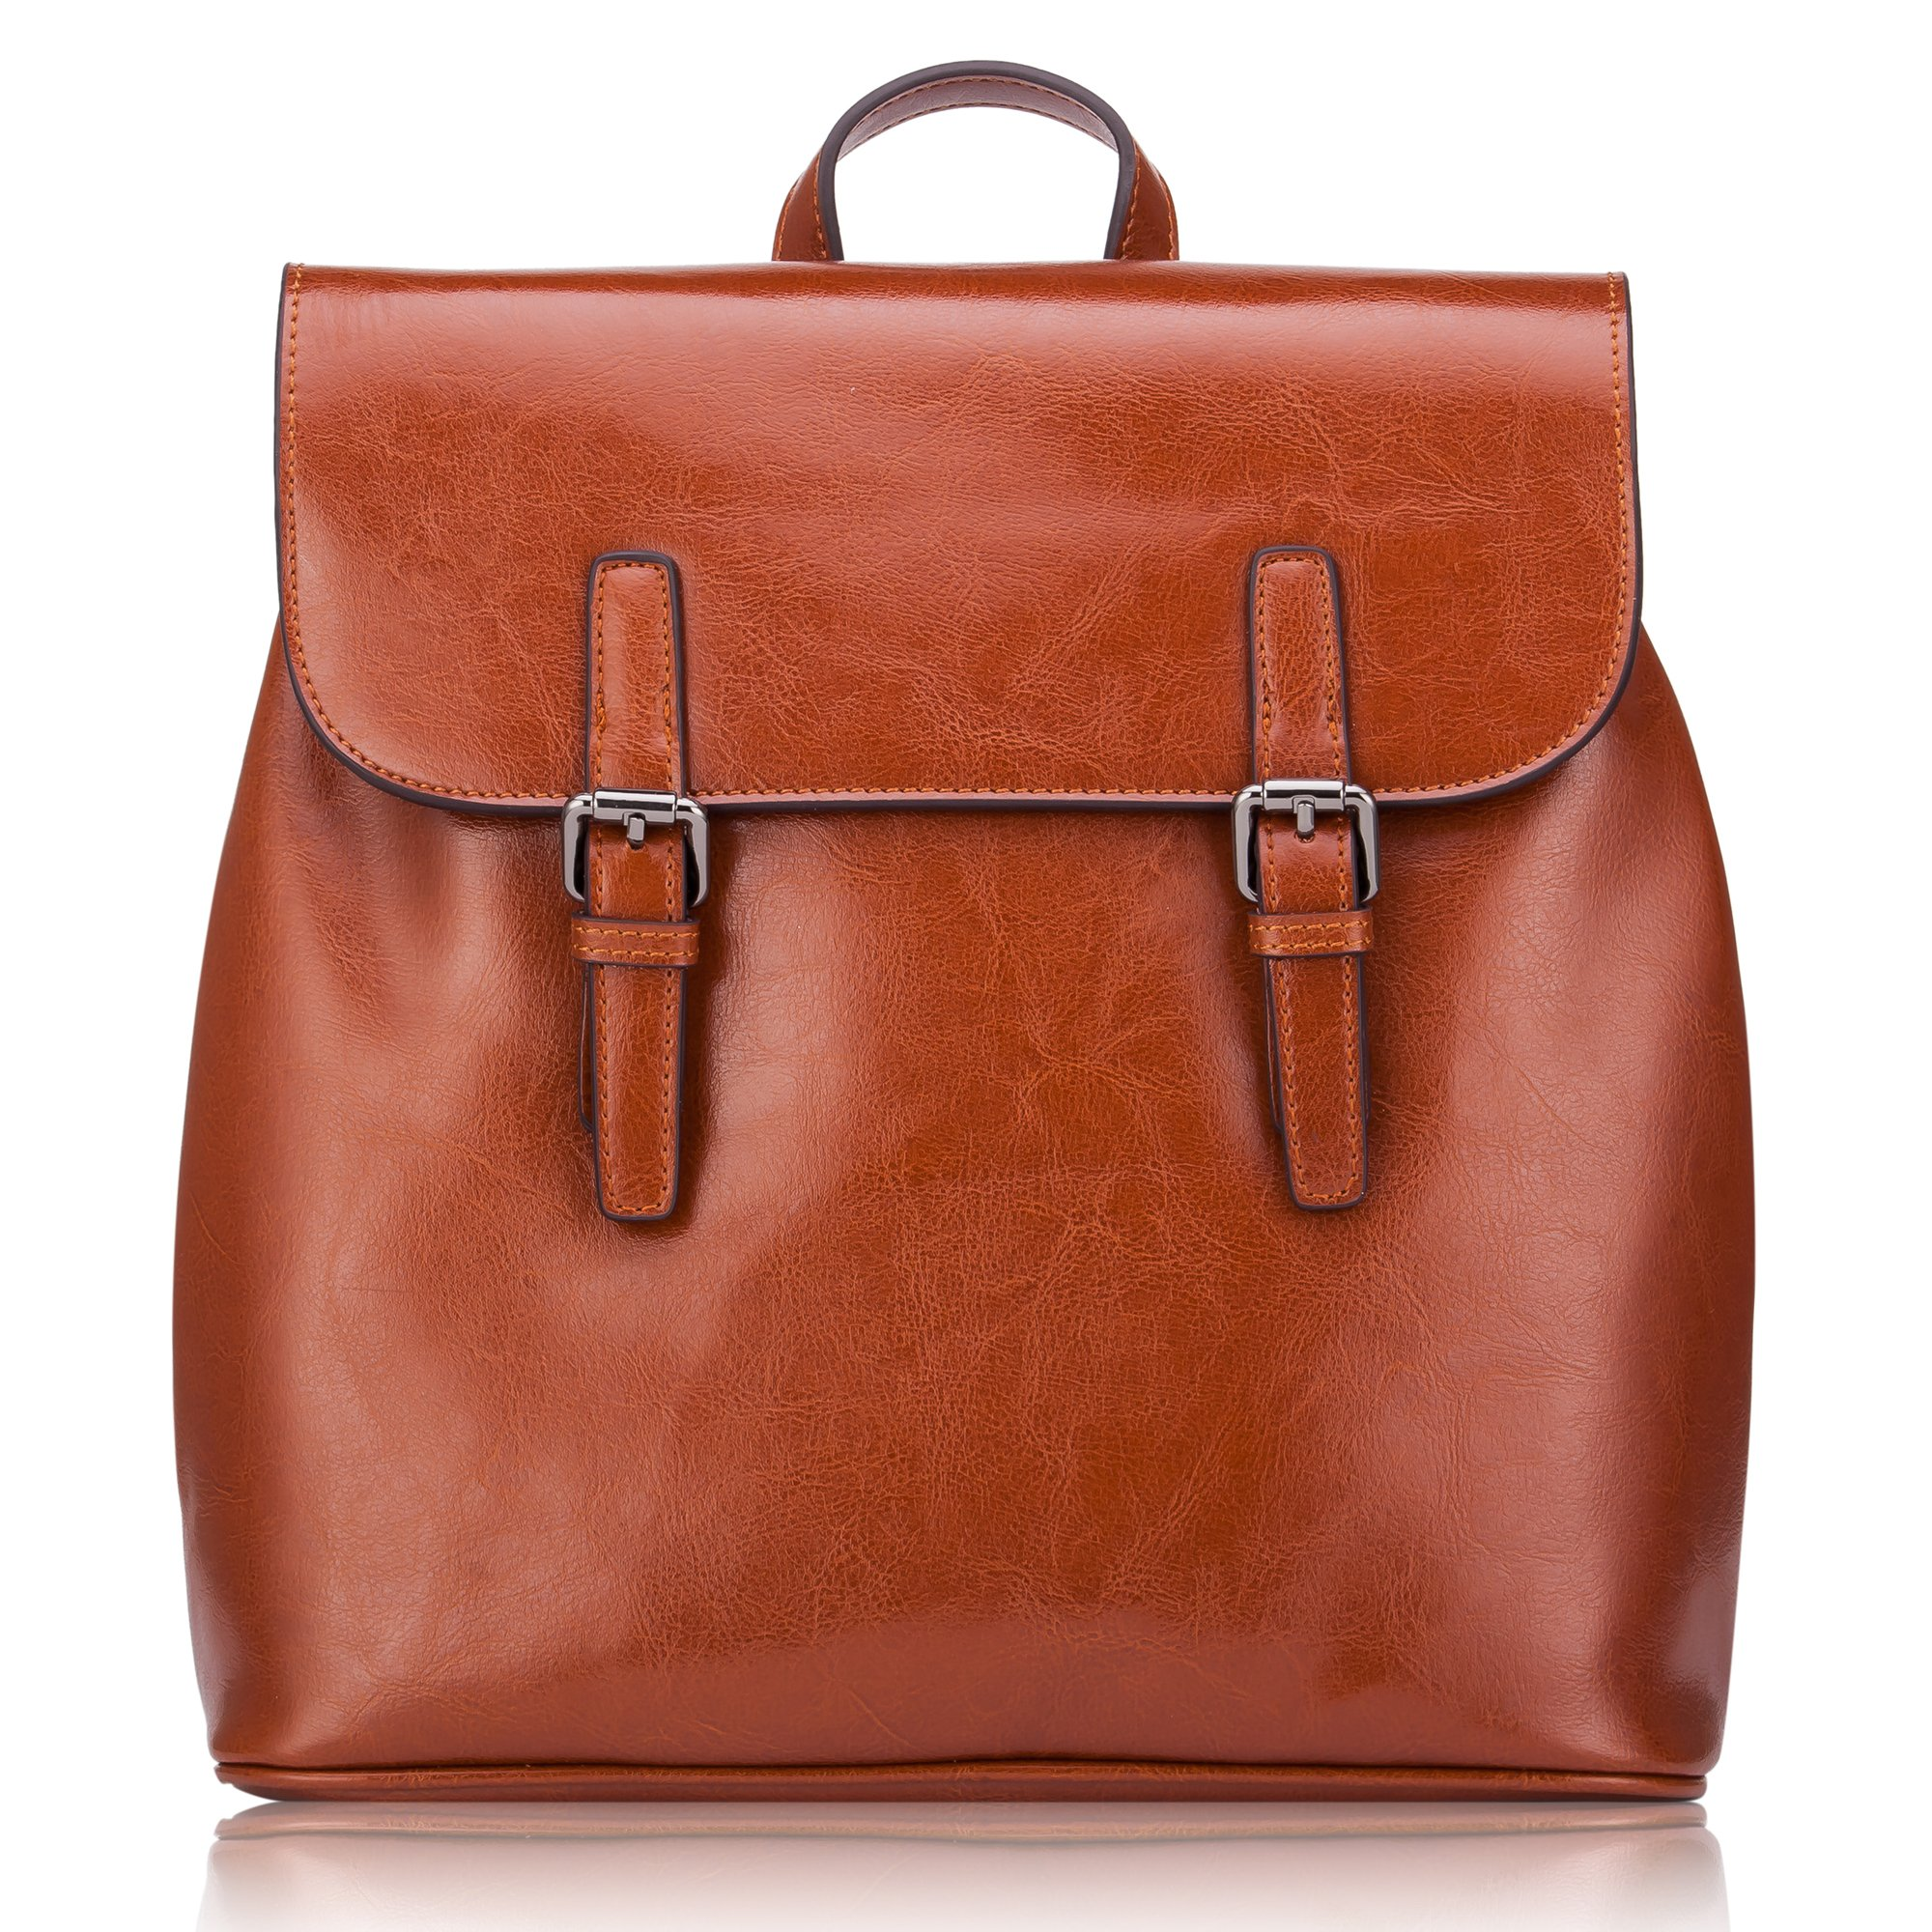 Women' s Genuine Leather Small Backpack School Bag Travelling Bag Made of Oiled Cow Leather With Vintage Design